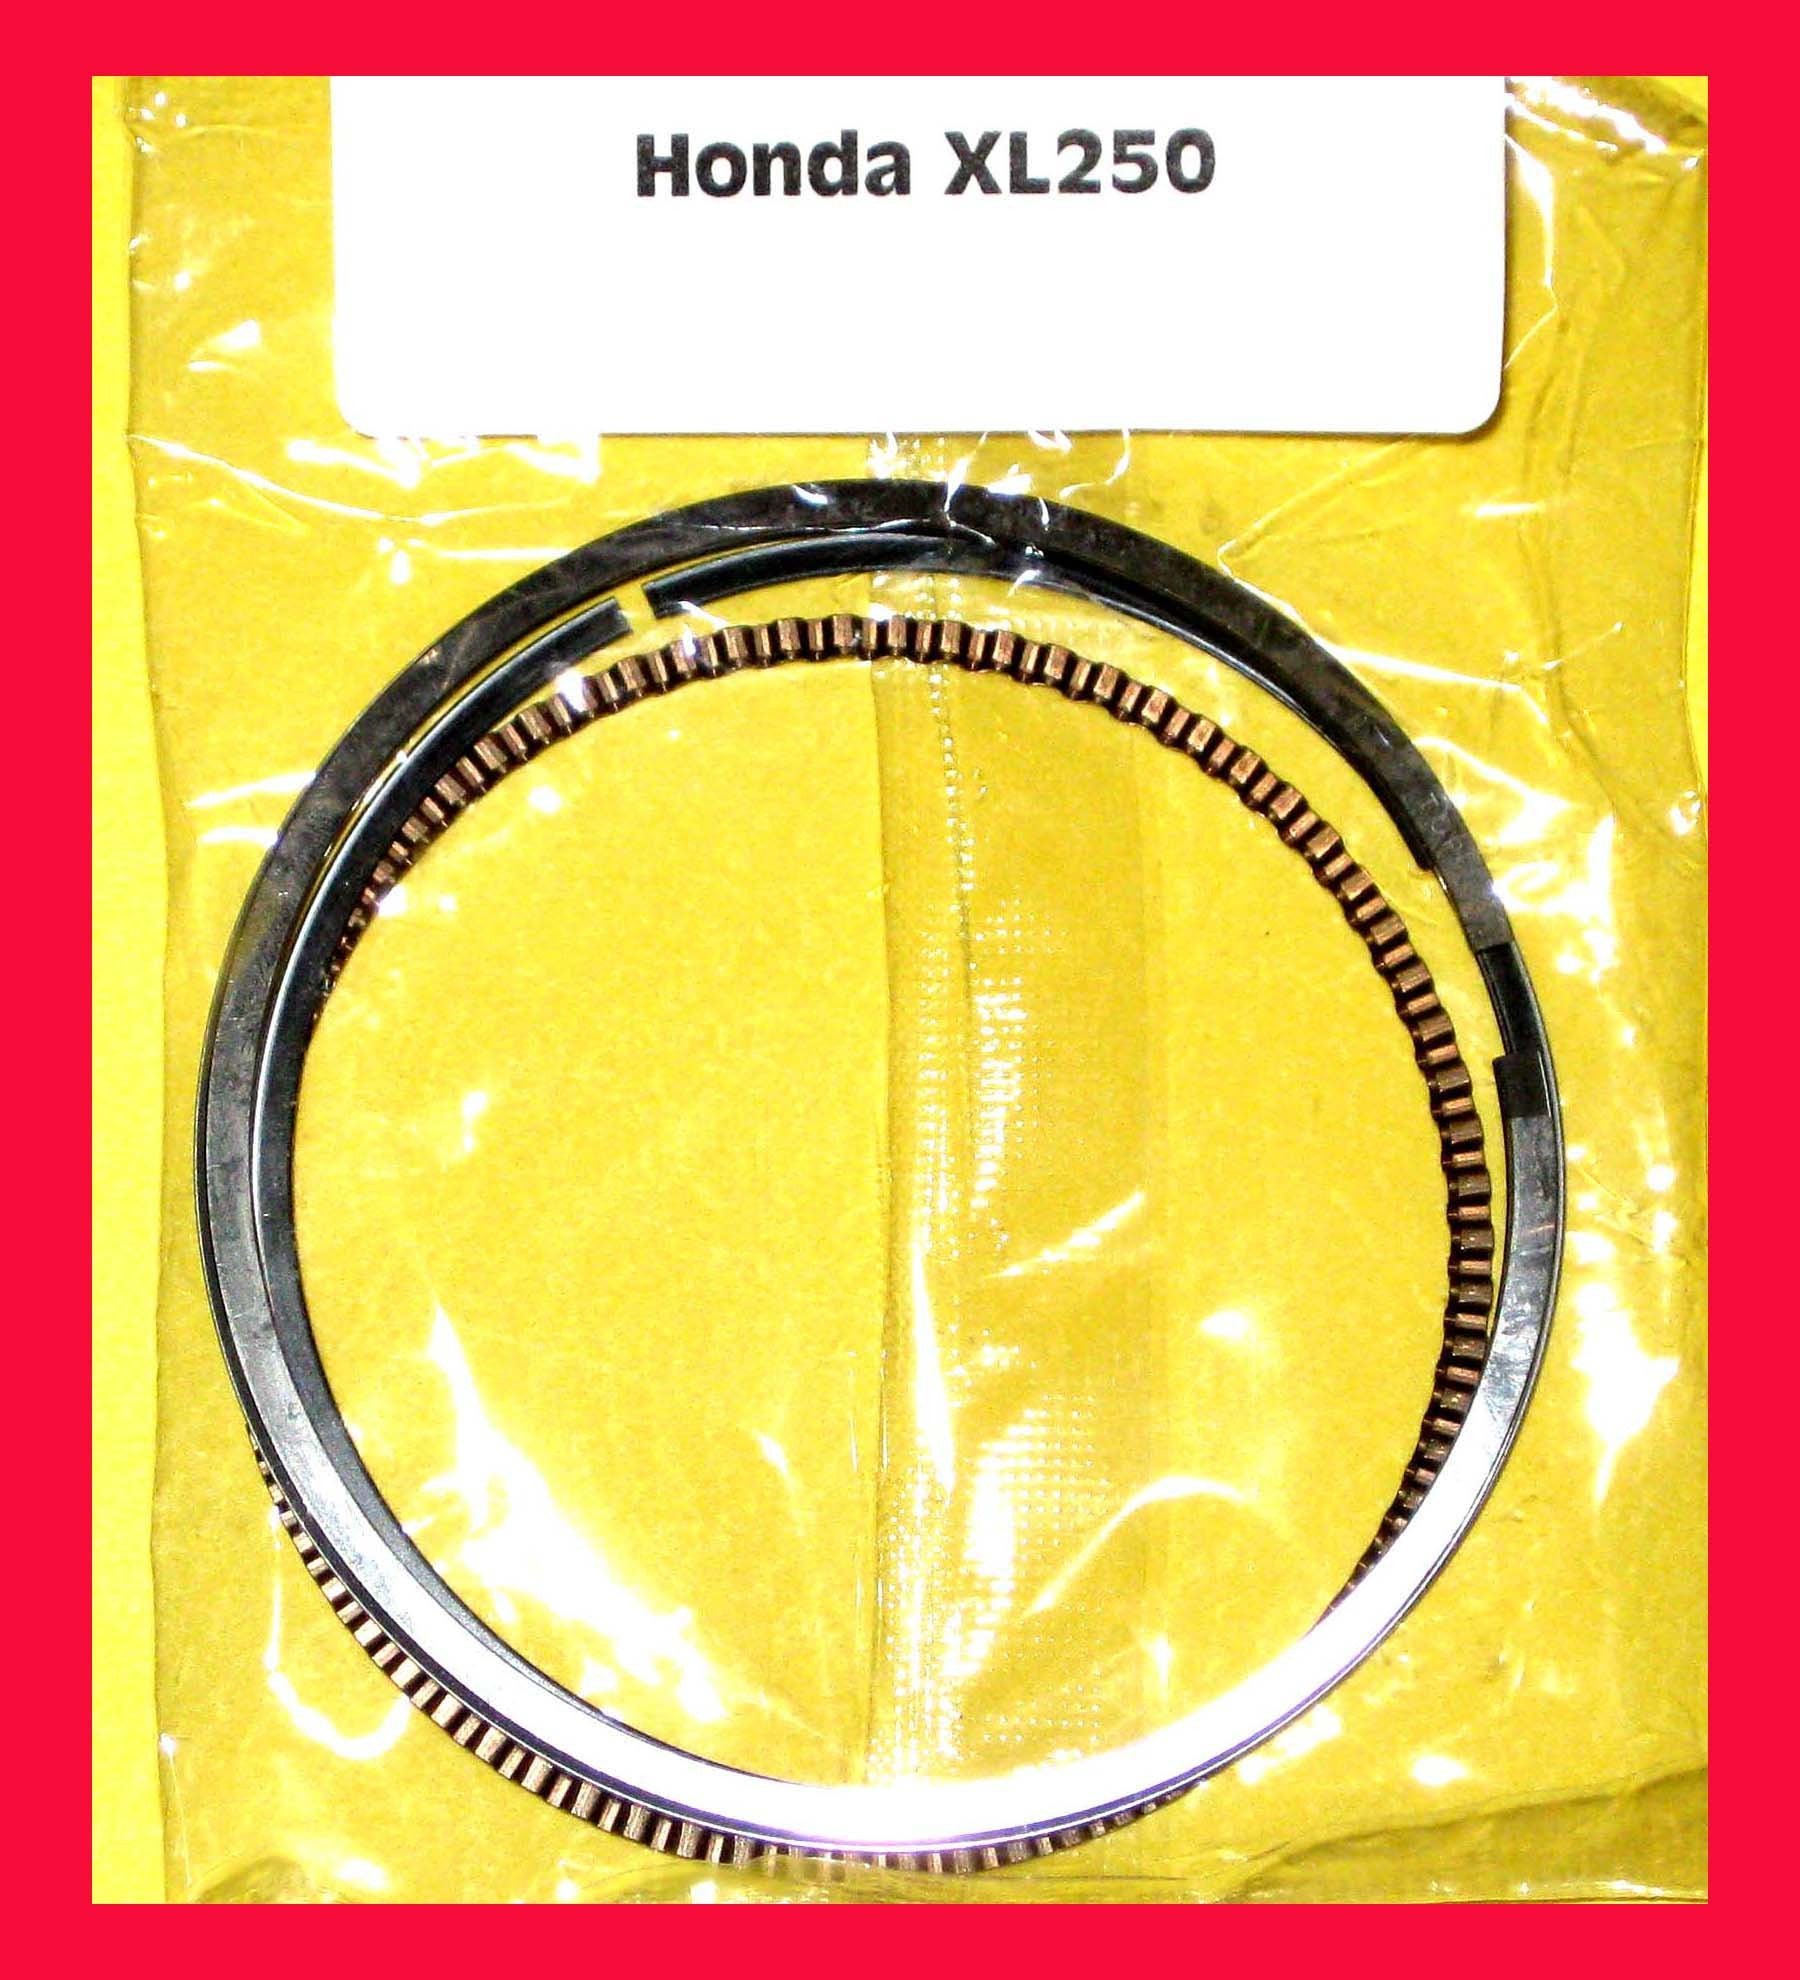 Junta Da Base Do Cilindro Honda XL250 1972 1973 1974 1975 12191-329-010